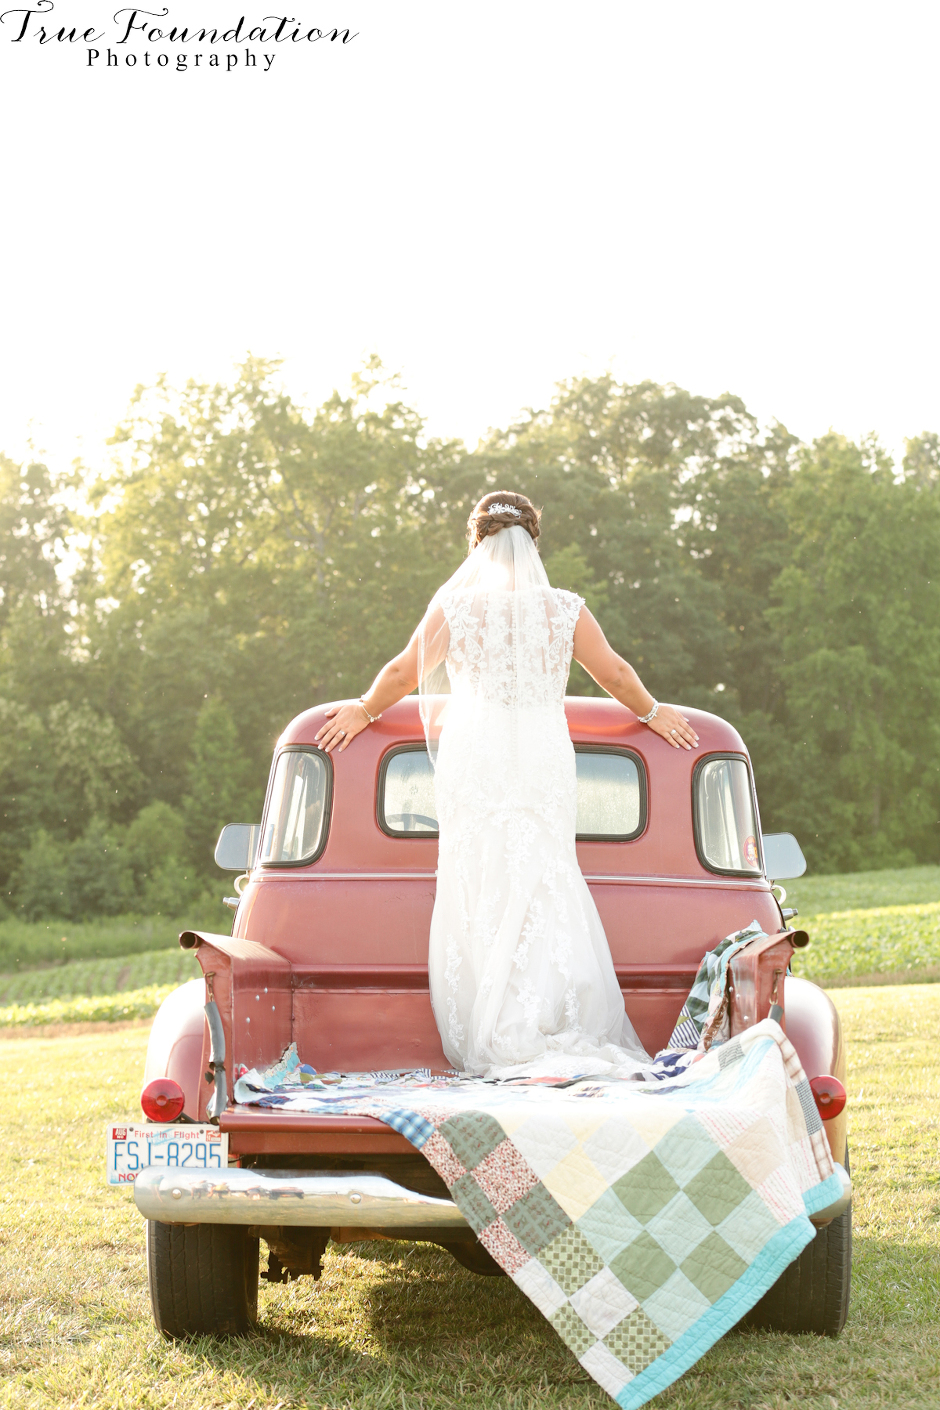 Bridal - Portrait - Photography - Photos - Hendersonville - NC - Shelby - Photographers - Farm - Country - Pinterest - Bride (40)